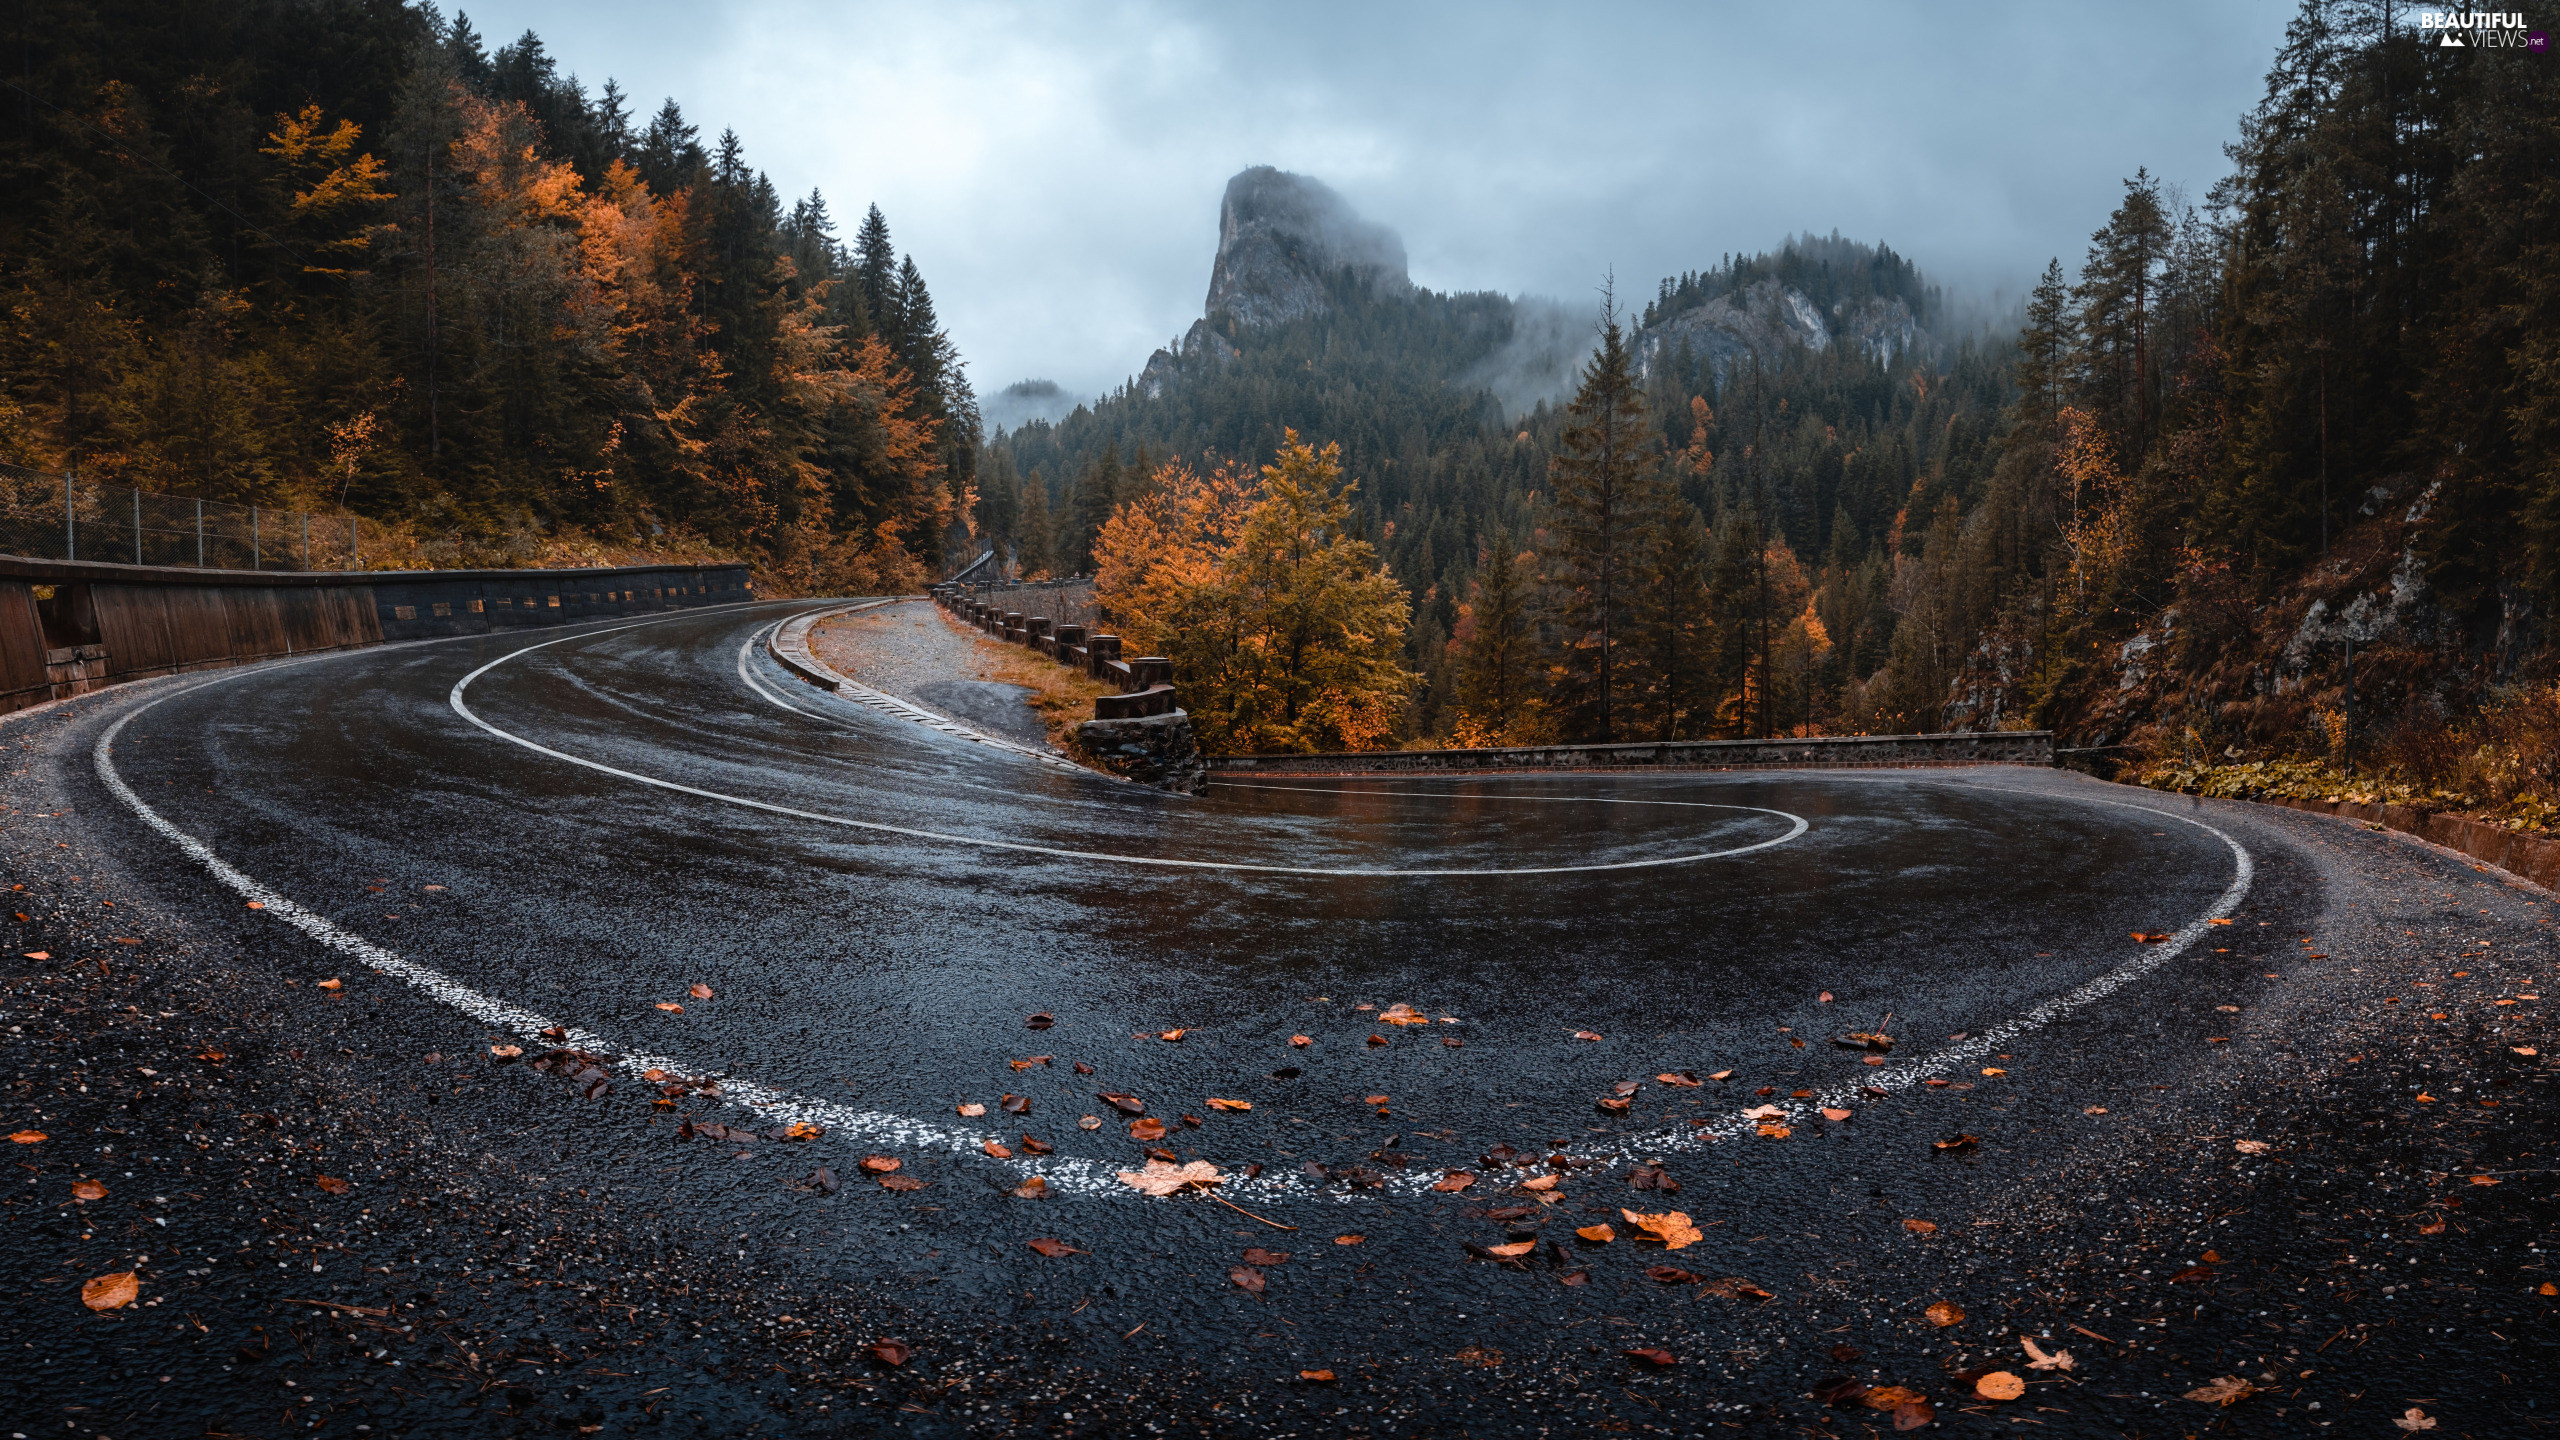 trees, Way, Mountains, autumn, viewes, turn